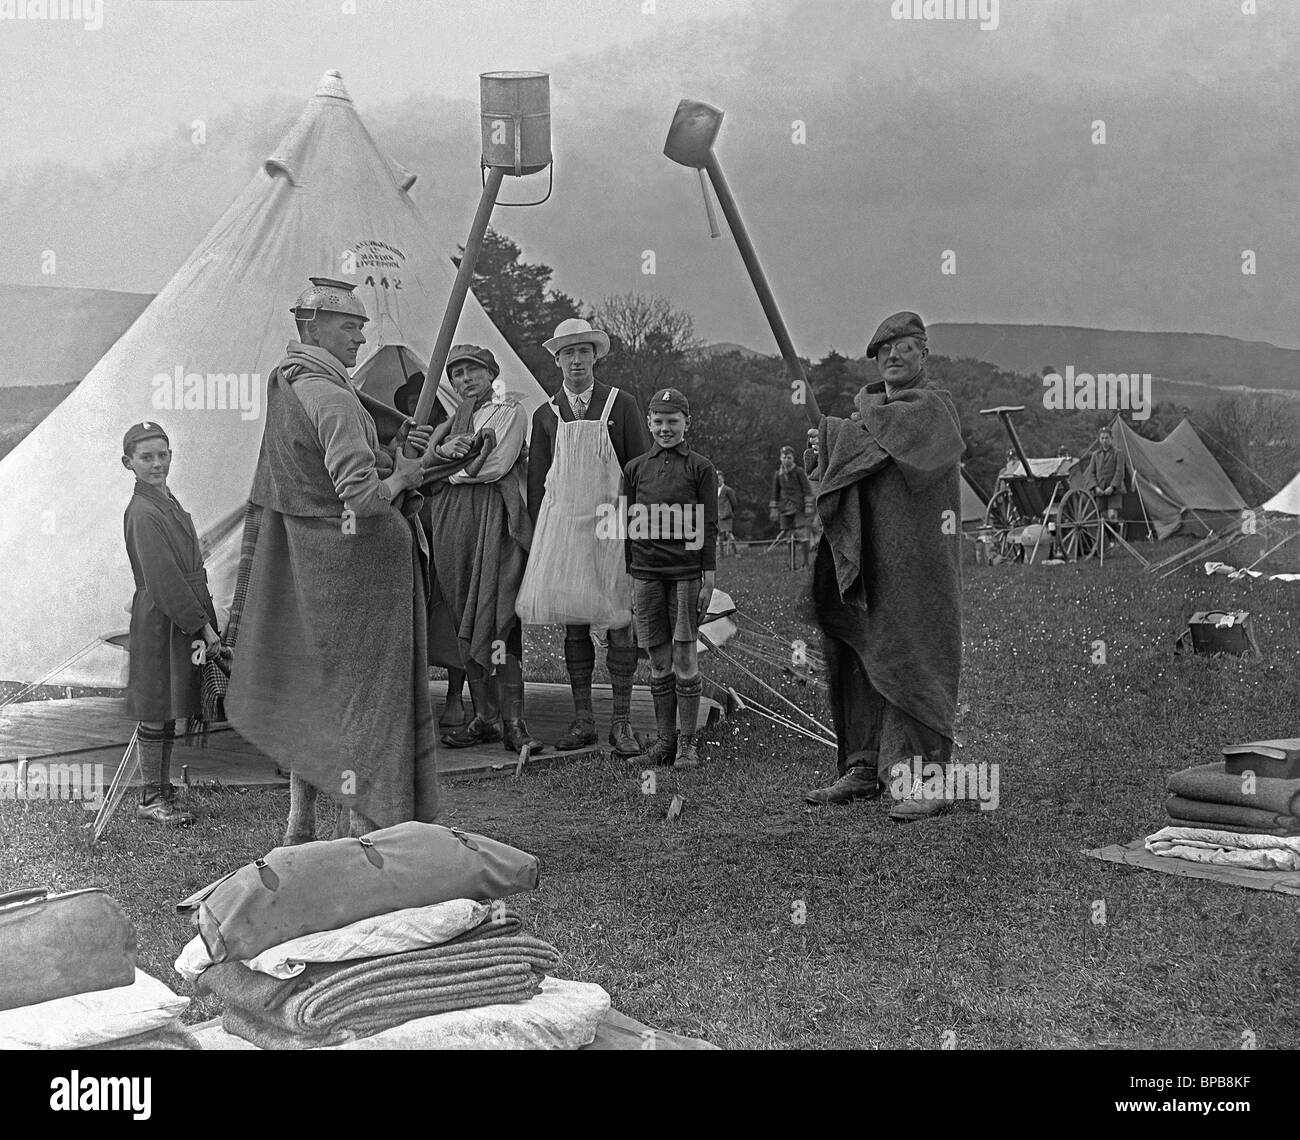 Unusual ritual involving boy scouts, a man wearing a colander on his head and another wearing a tutu at a scout - Stock Image